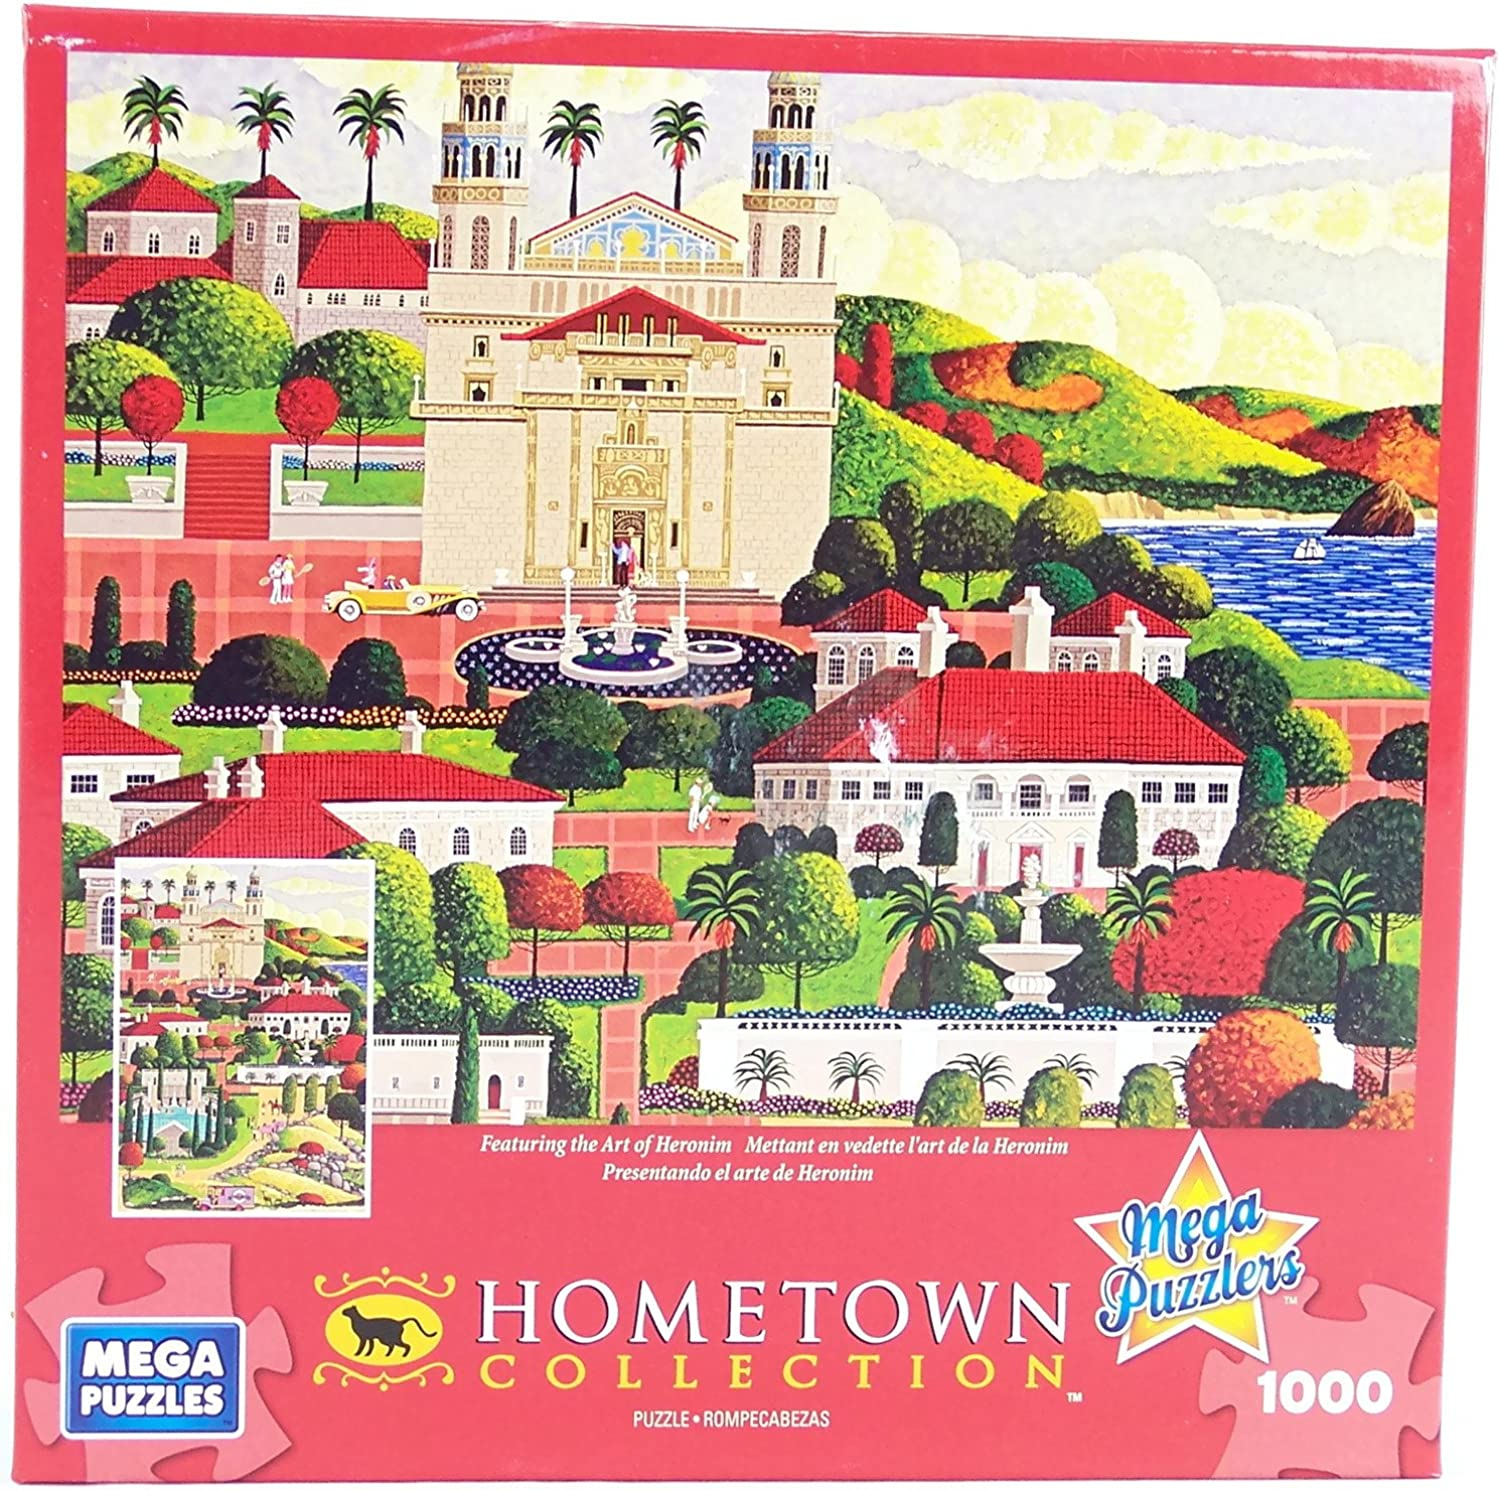 Hometown Collection Weekend At the Castle 1000 Piece Jigsaw Puzzle By Heronim